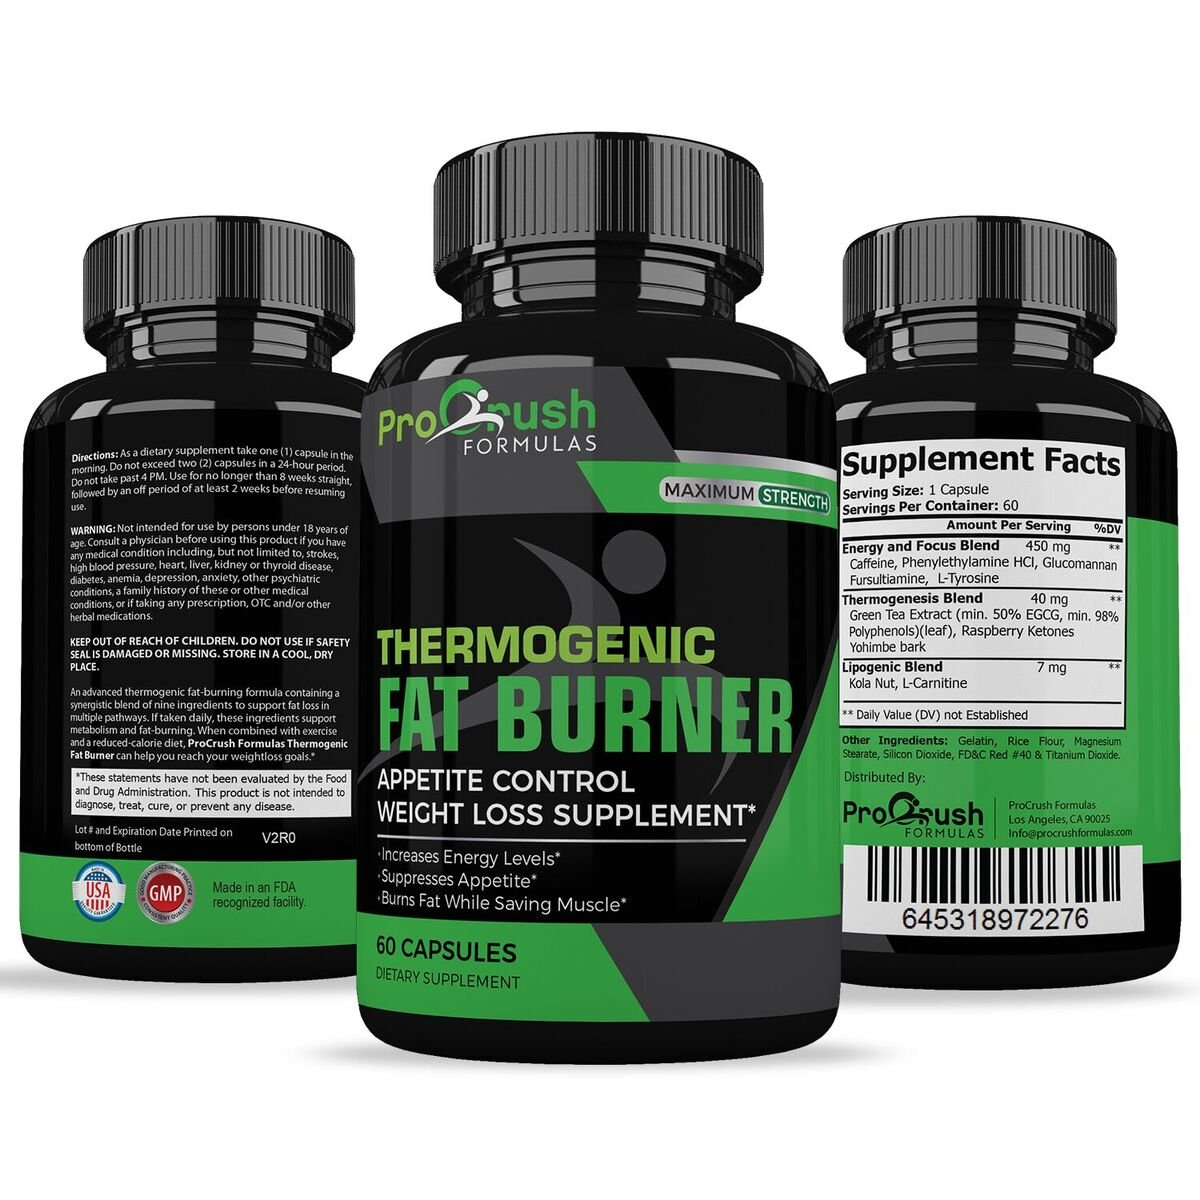 Thermogenic Fat Burner & Appetite Control Weight Loss Supplement- Superior Formula That Burns Fat & Increases Metabolism. Ultimate Appetite Suppressant by ProCrush Formulas by ProCrush Formulas